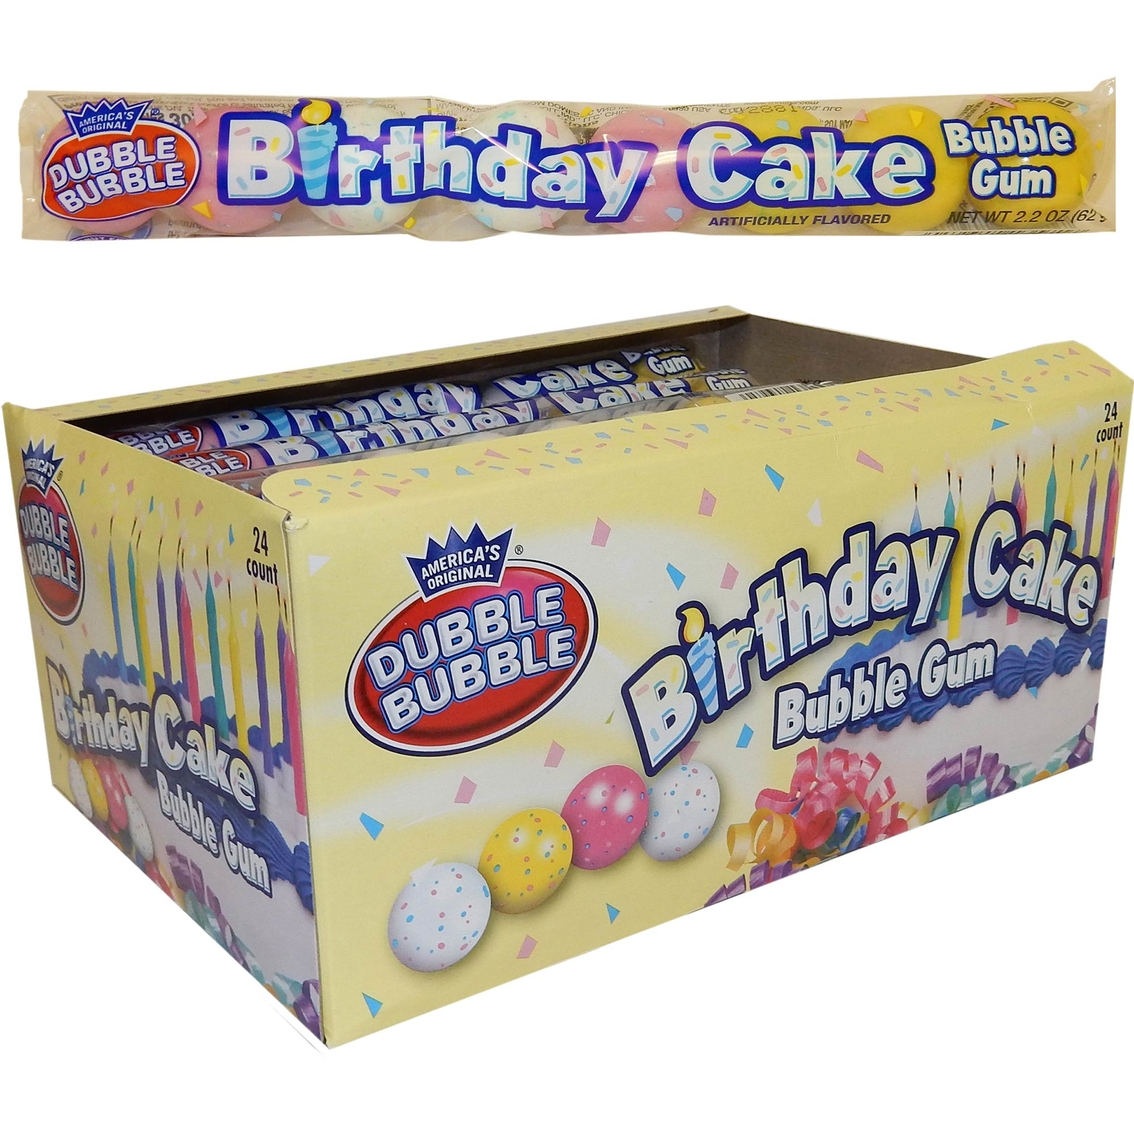 Dubble Bubble Birthday Cake Bubble Gum 24 Pk.